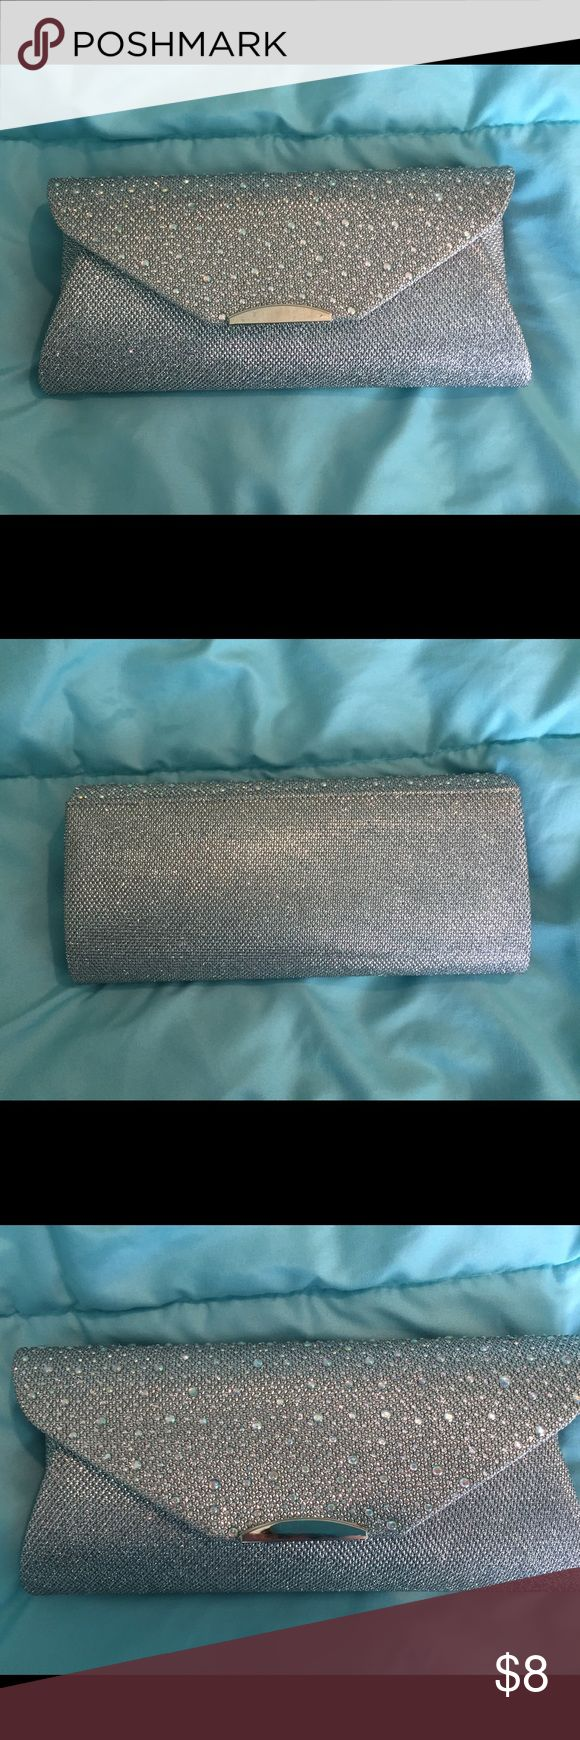 PRICE DROP! Sparkly Clutch/Handbag Sparkly silver clutch/handbag. Has two different strap options or can be carried as a clutch with no straps. In excellent condition, only used once for prom. Accessories